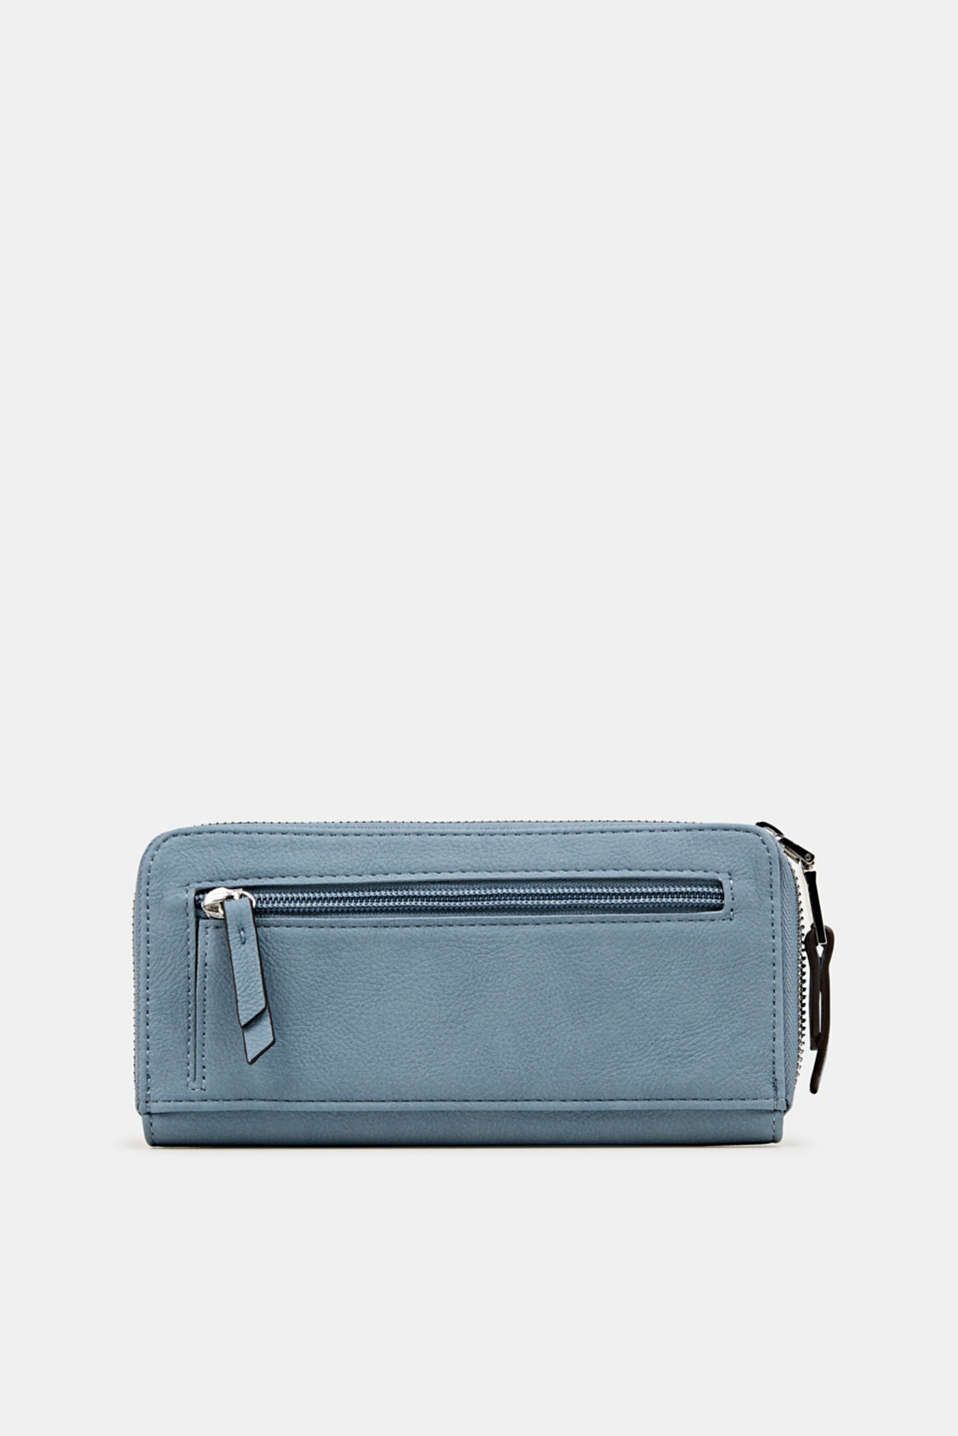 Faux leather purse, LIGHT BLUE, detail image number 2